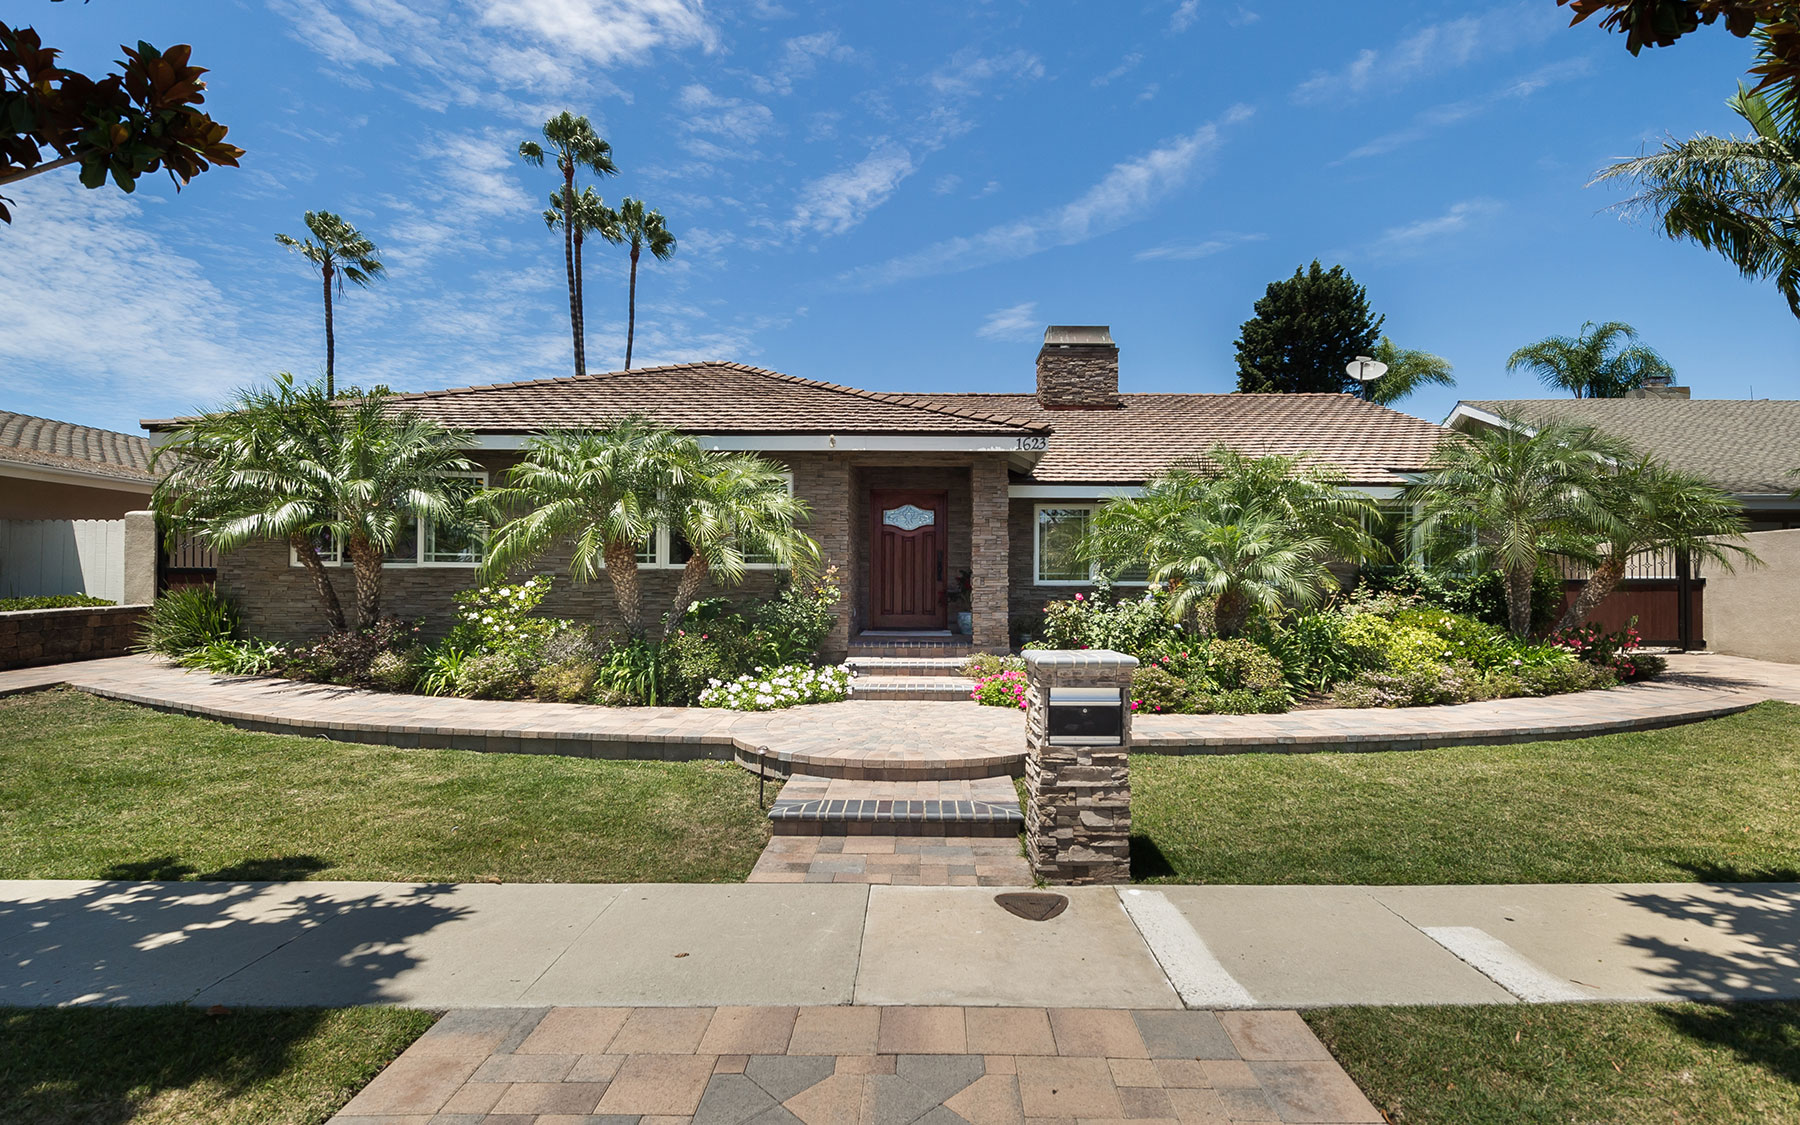 Single Family Home for Sale at 1623 Tradewinds Lane Newport Beach, California, 92660 United States